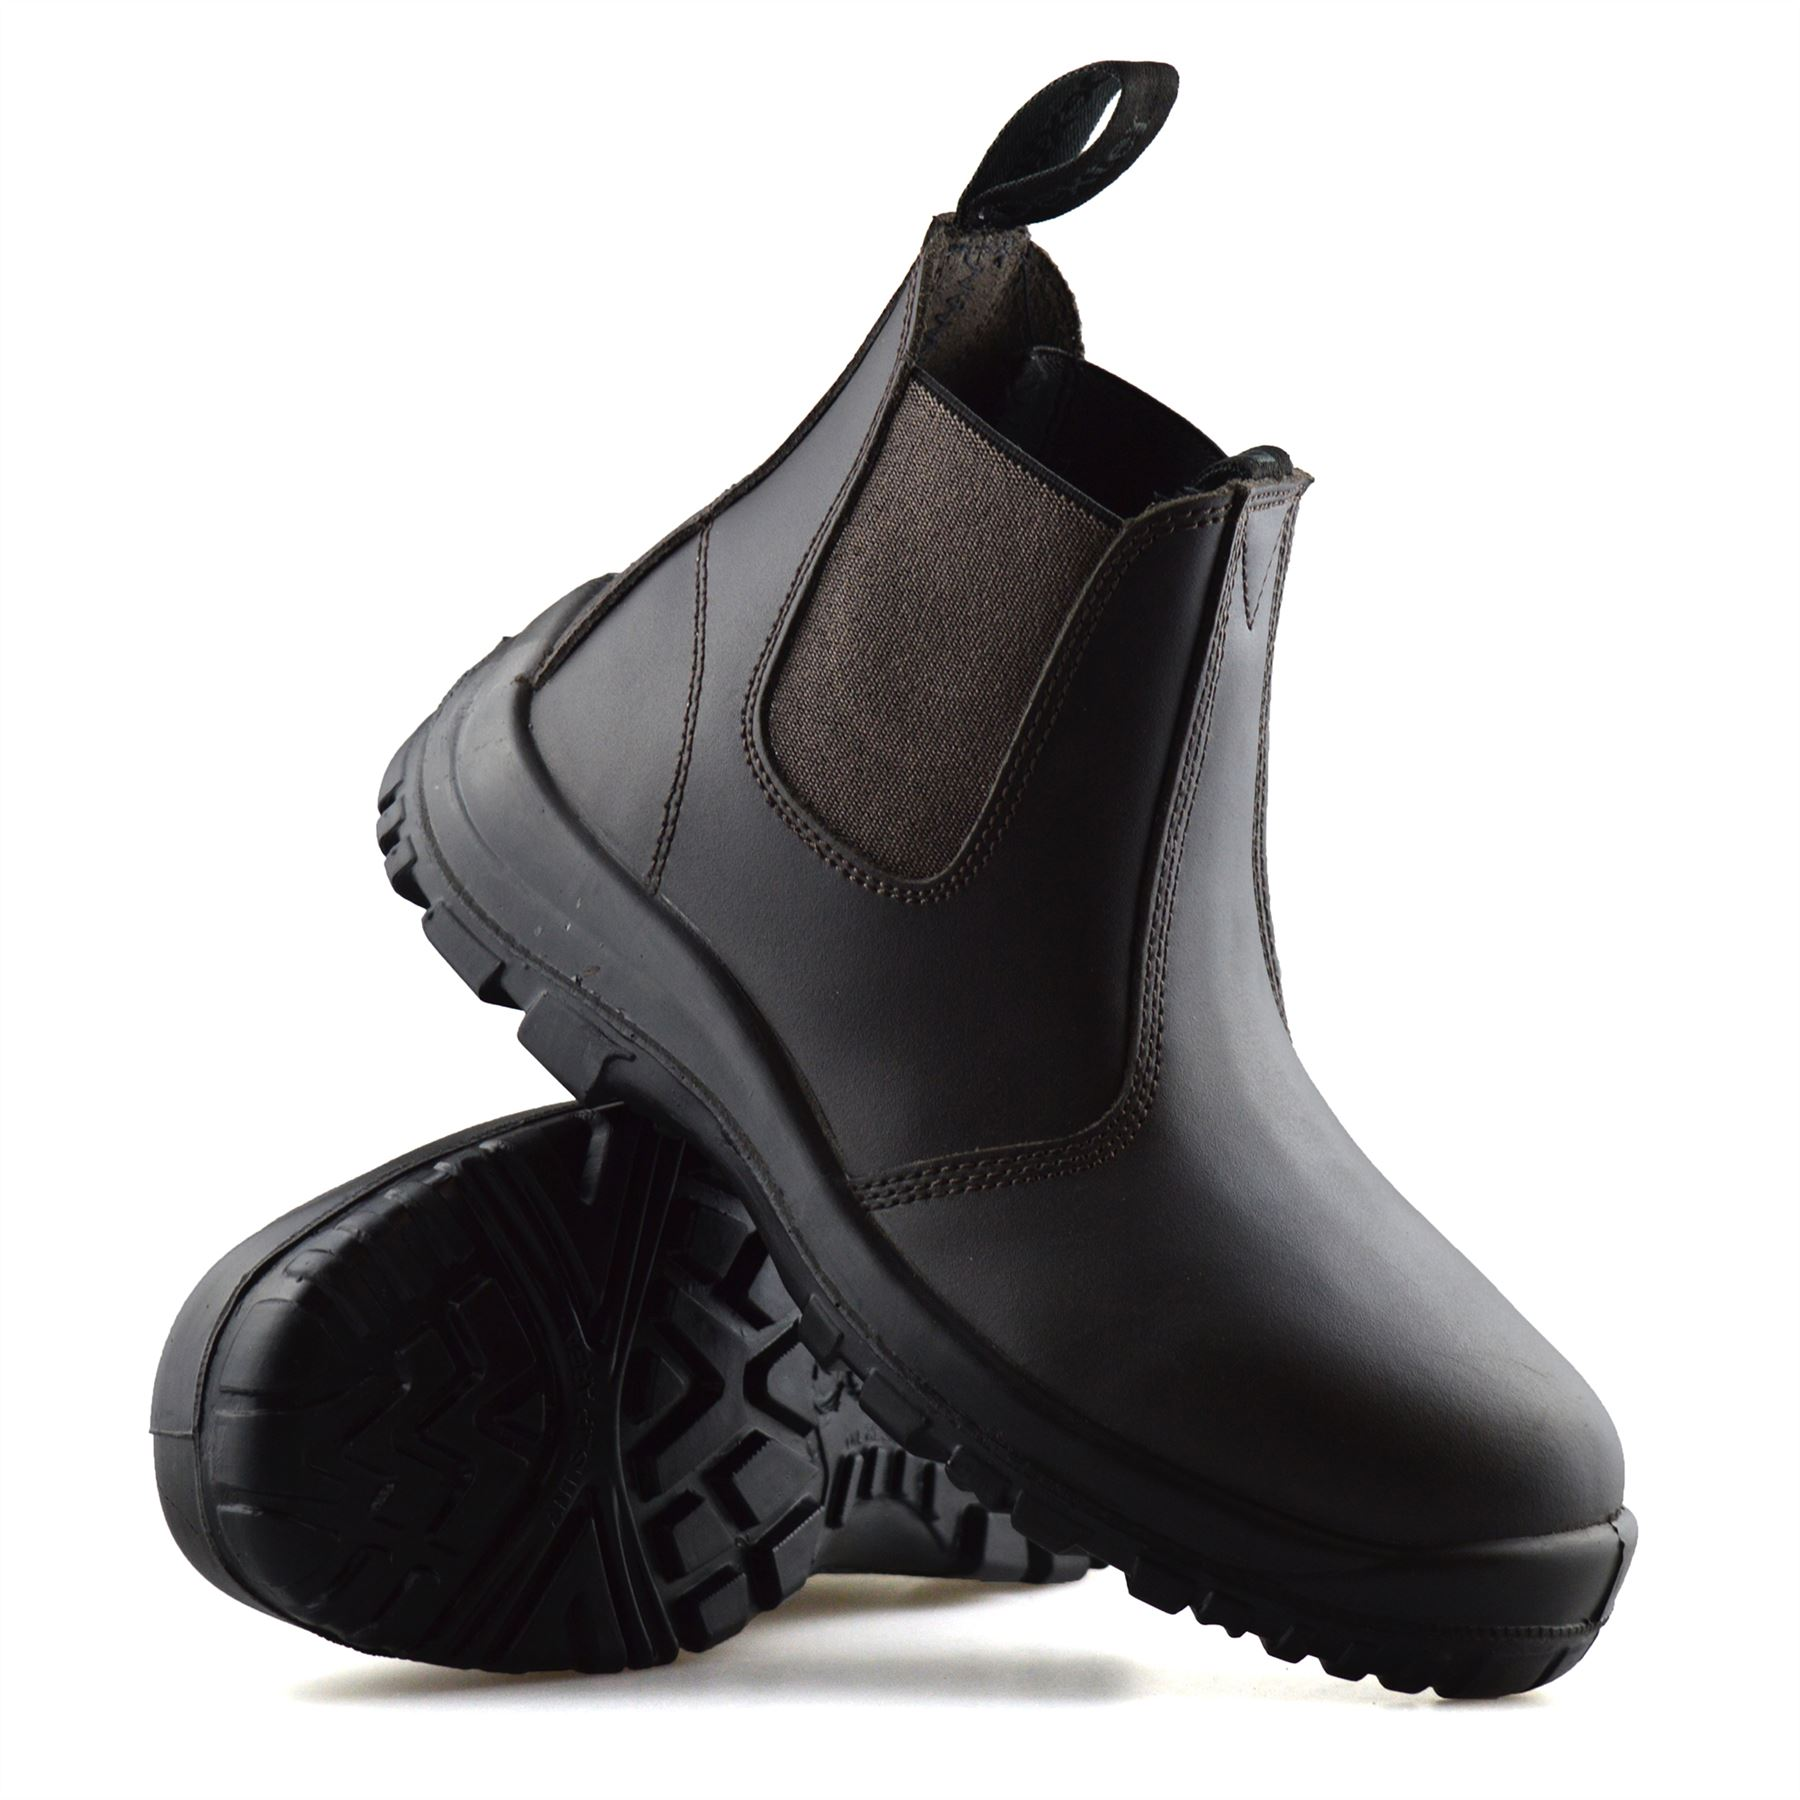 Mens-Leather-Wide-Fit-Chelsea-Ankle-Boots-Casual-Smart-Dealer-Work-Shoes-Size thumbnail 13